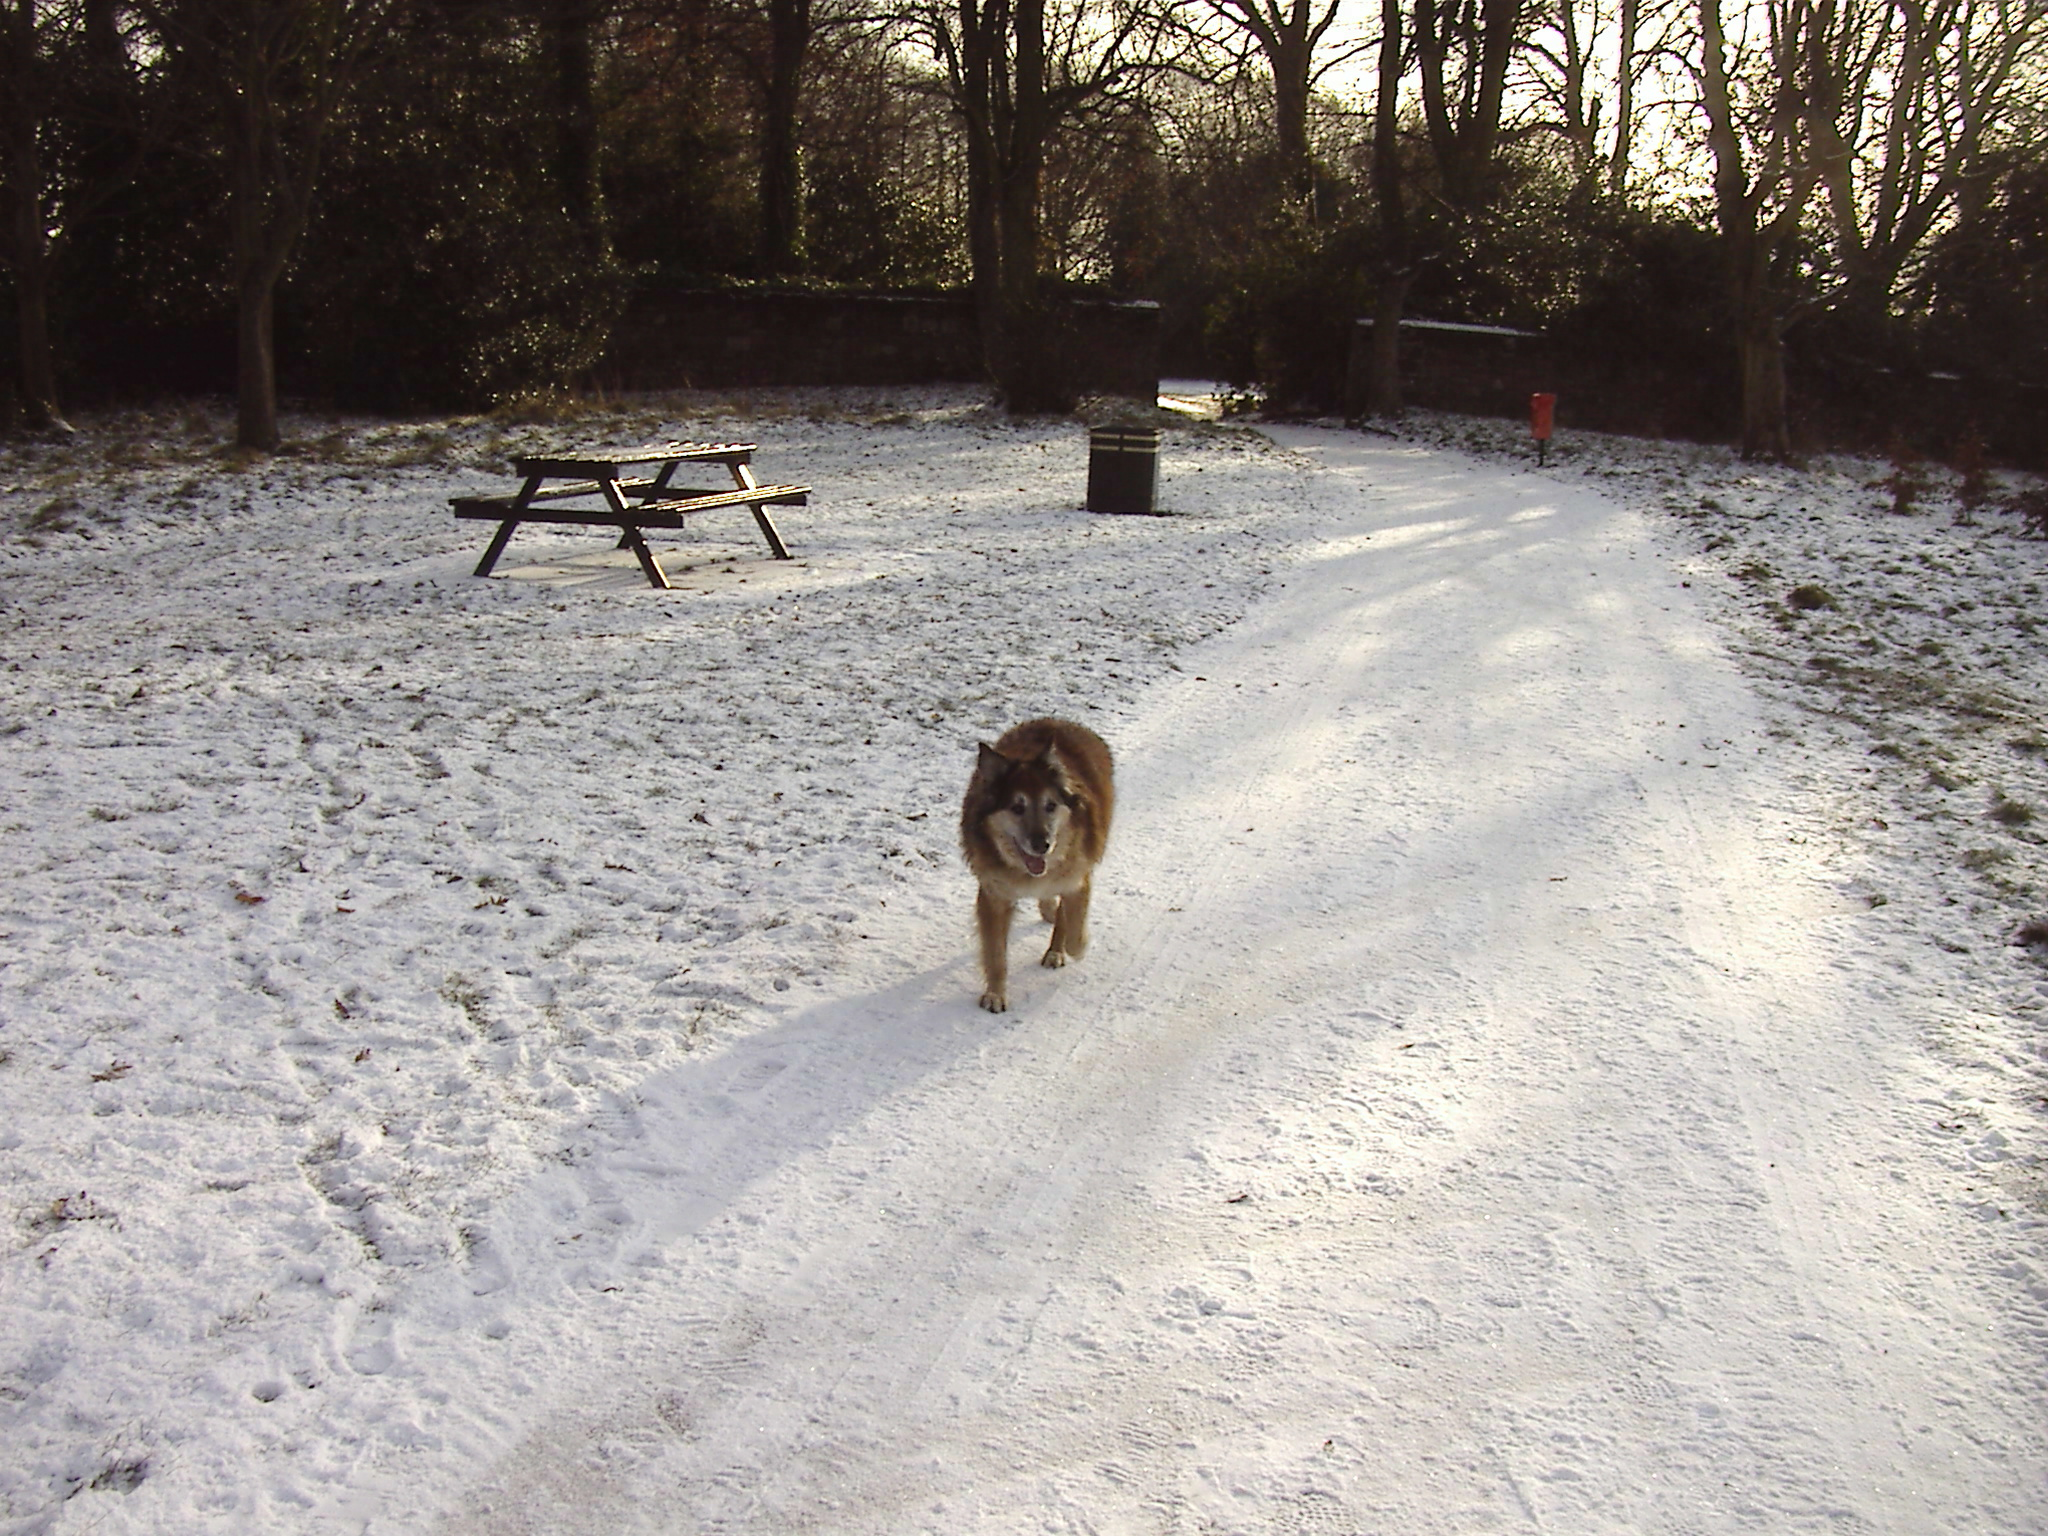 Max on Woolton Woods - Camp Hill 1/12/2010 at 12.44pm